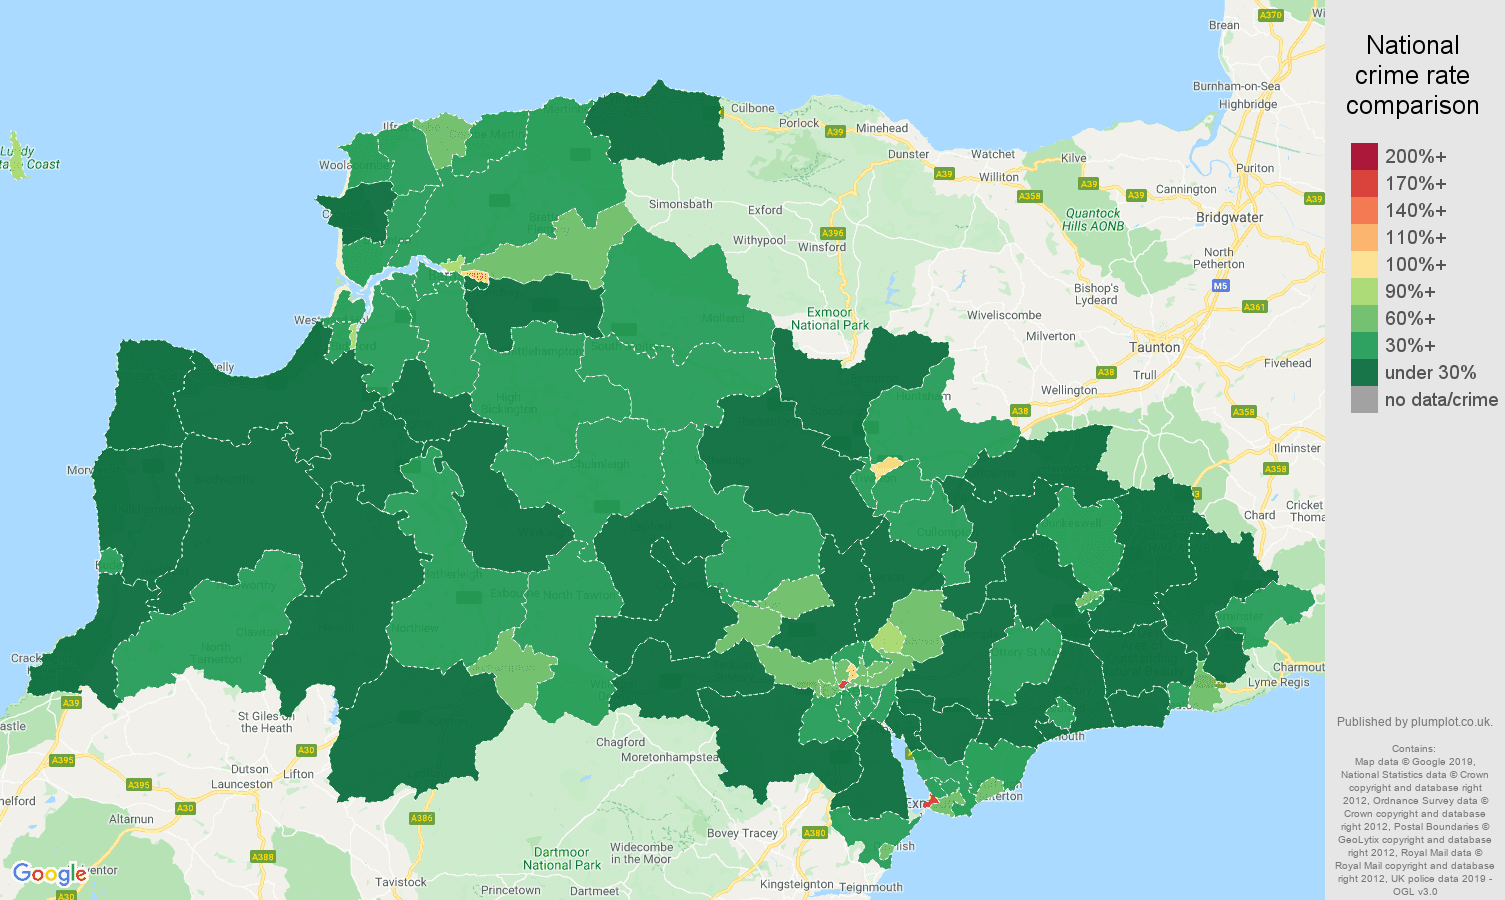 Exeter public order crime rate comparison map